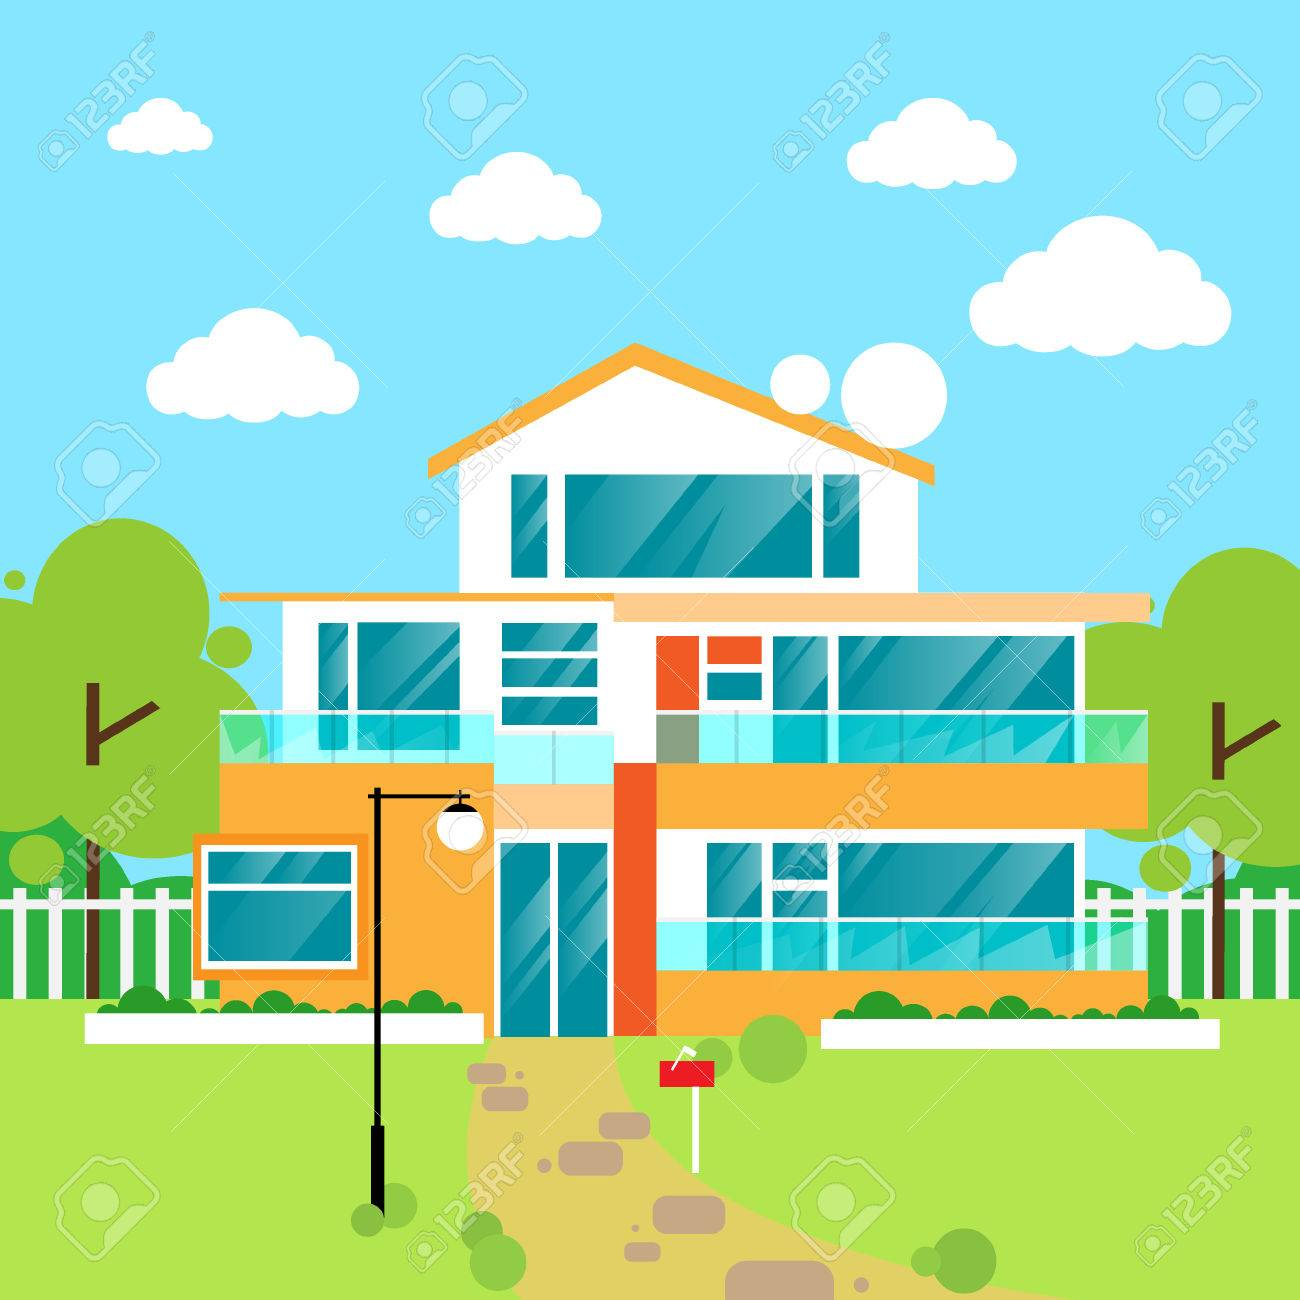 Big Modern Villa House Flat Design Vector Royalty Free Cliparts ...